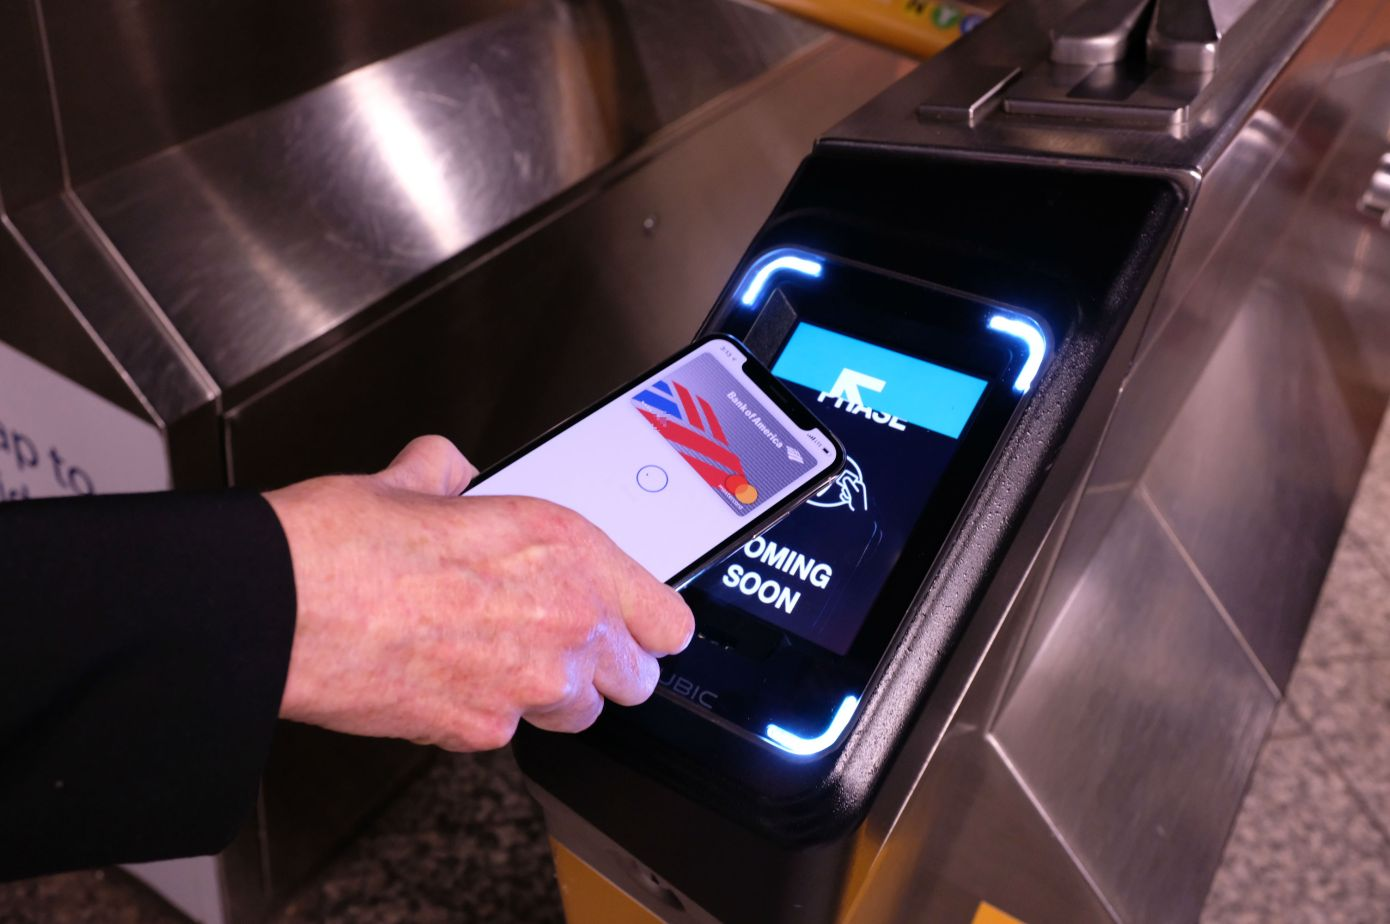 Apple Pay Comes to New York City's MTA Transit This Friday